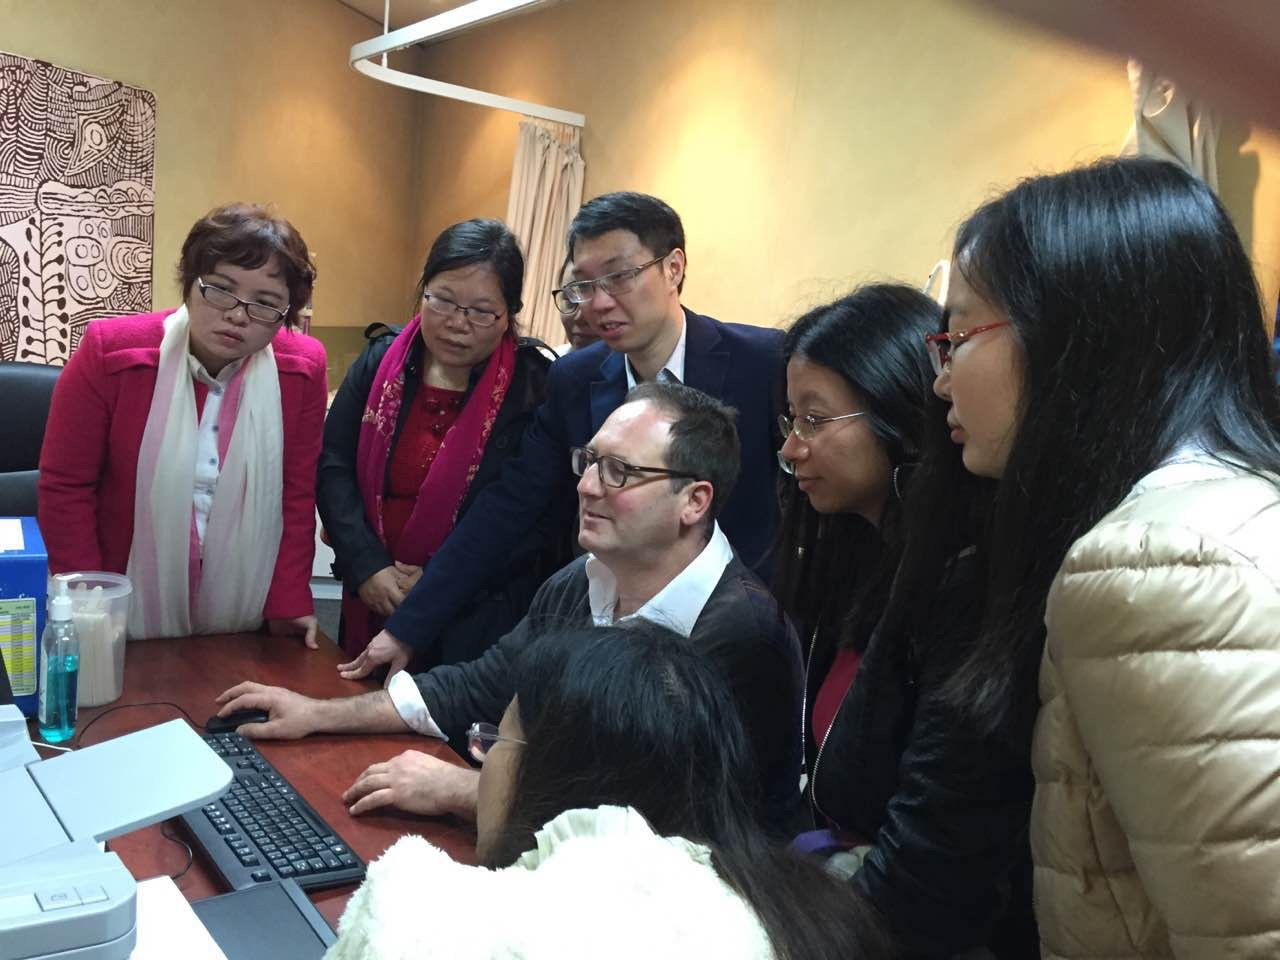 Chinese Doctors in Training Program in Melbourne